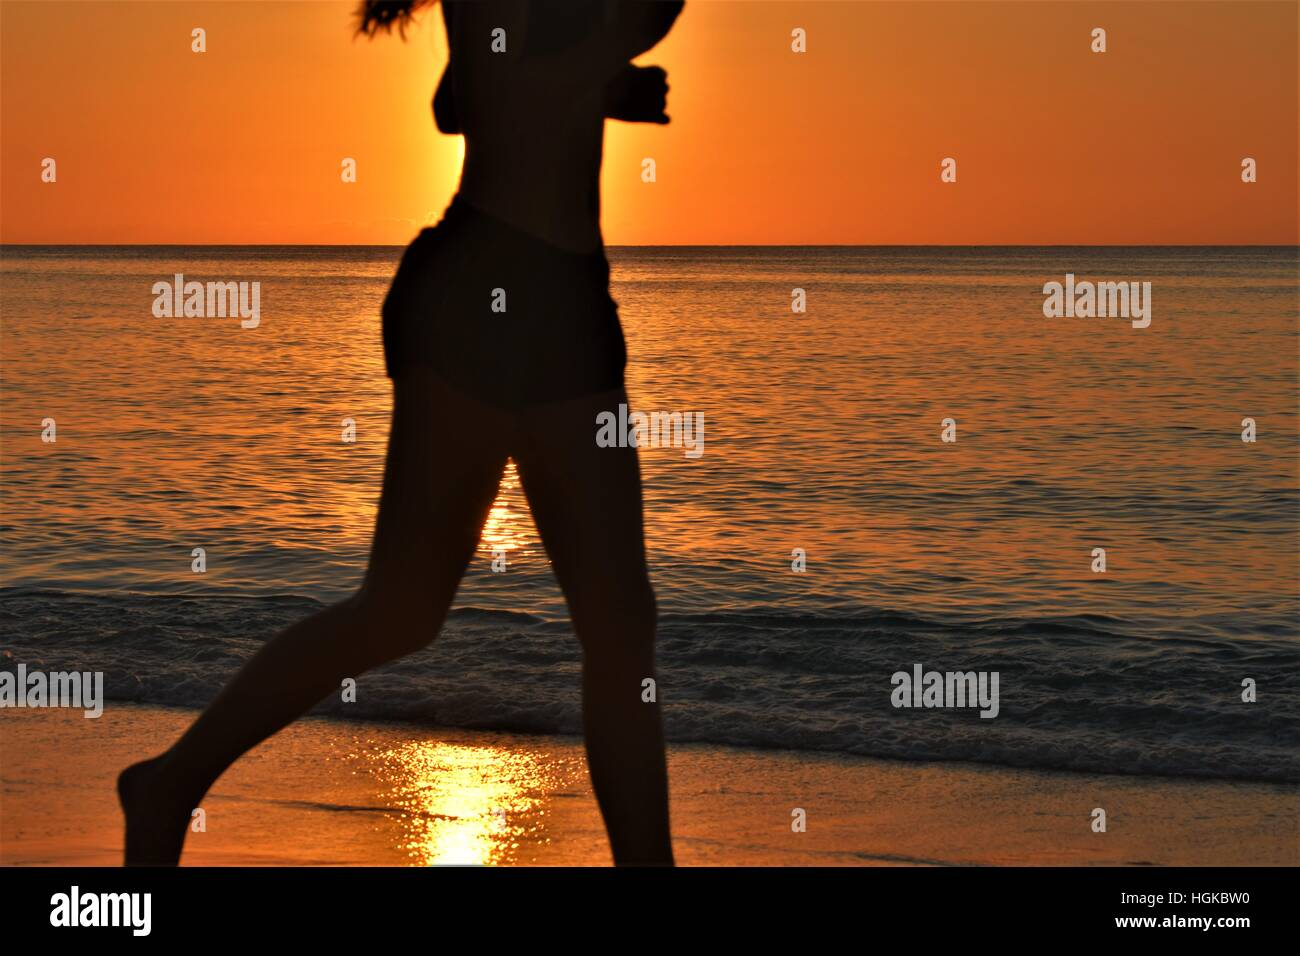 Jogging on the beach - Stock Image